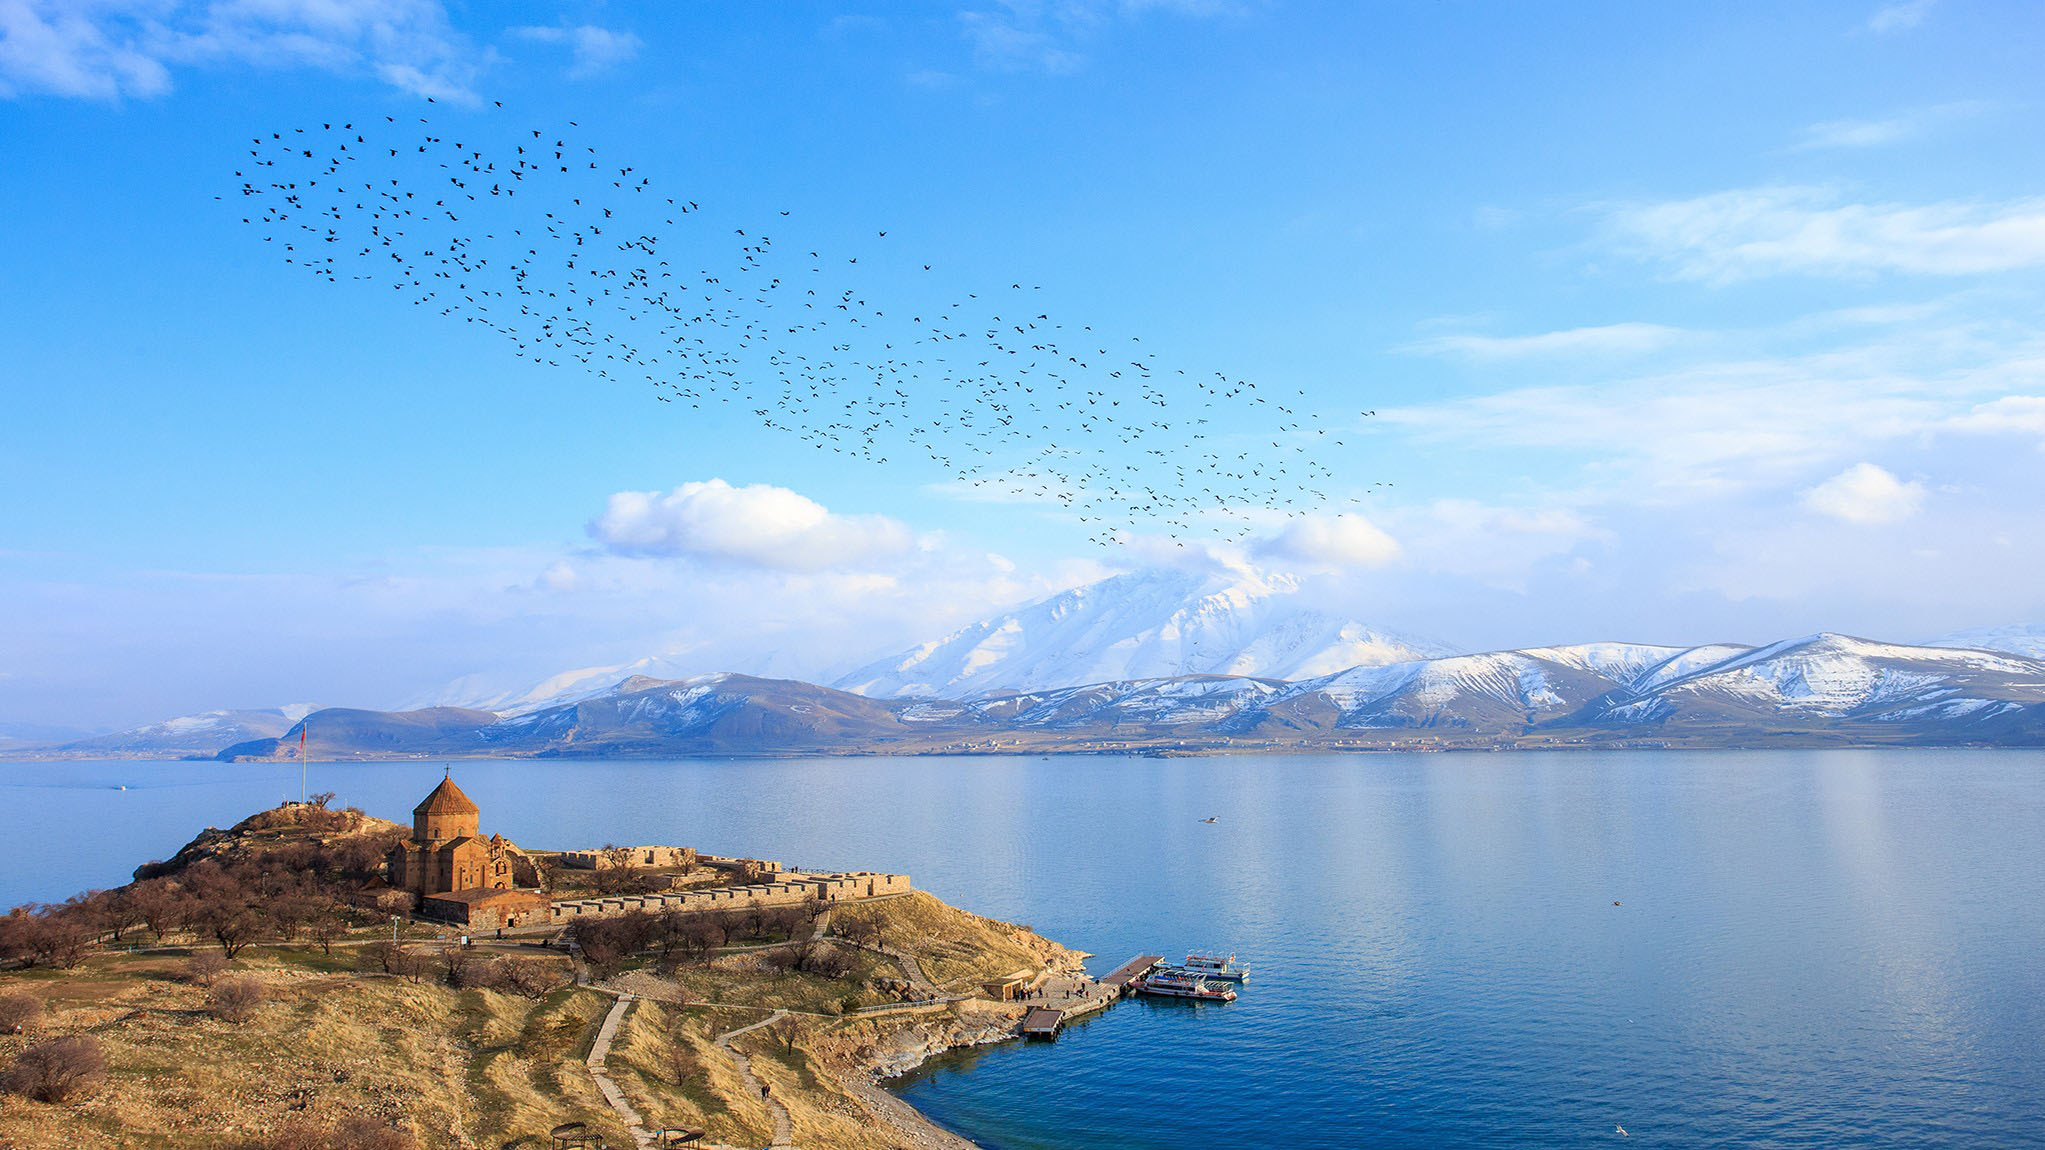 On the trail of ancient wonders in eastern Turkey